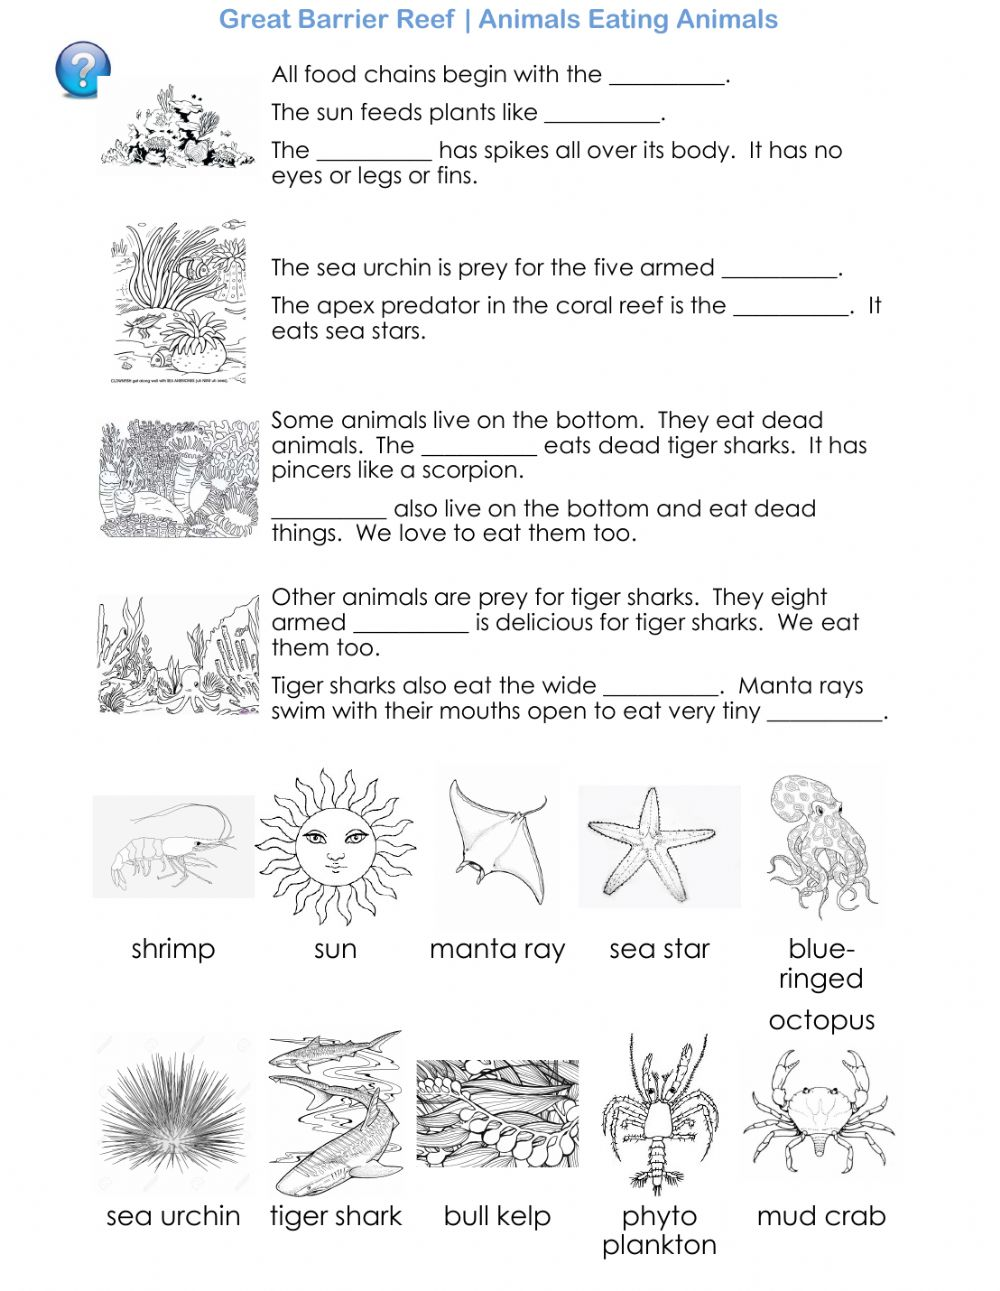 The Great Barrier Reef - Animals Eating Animals worksheet